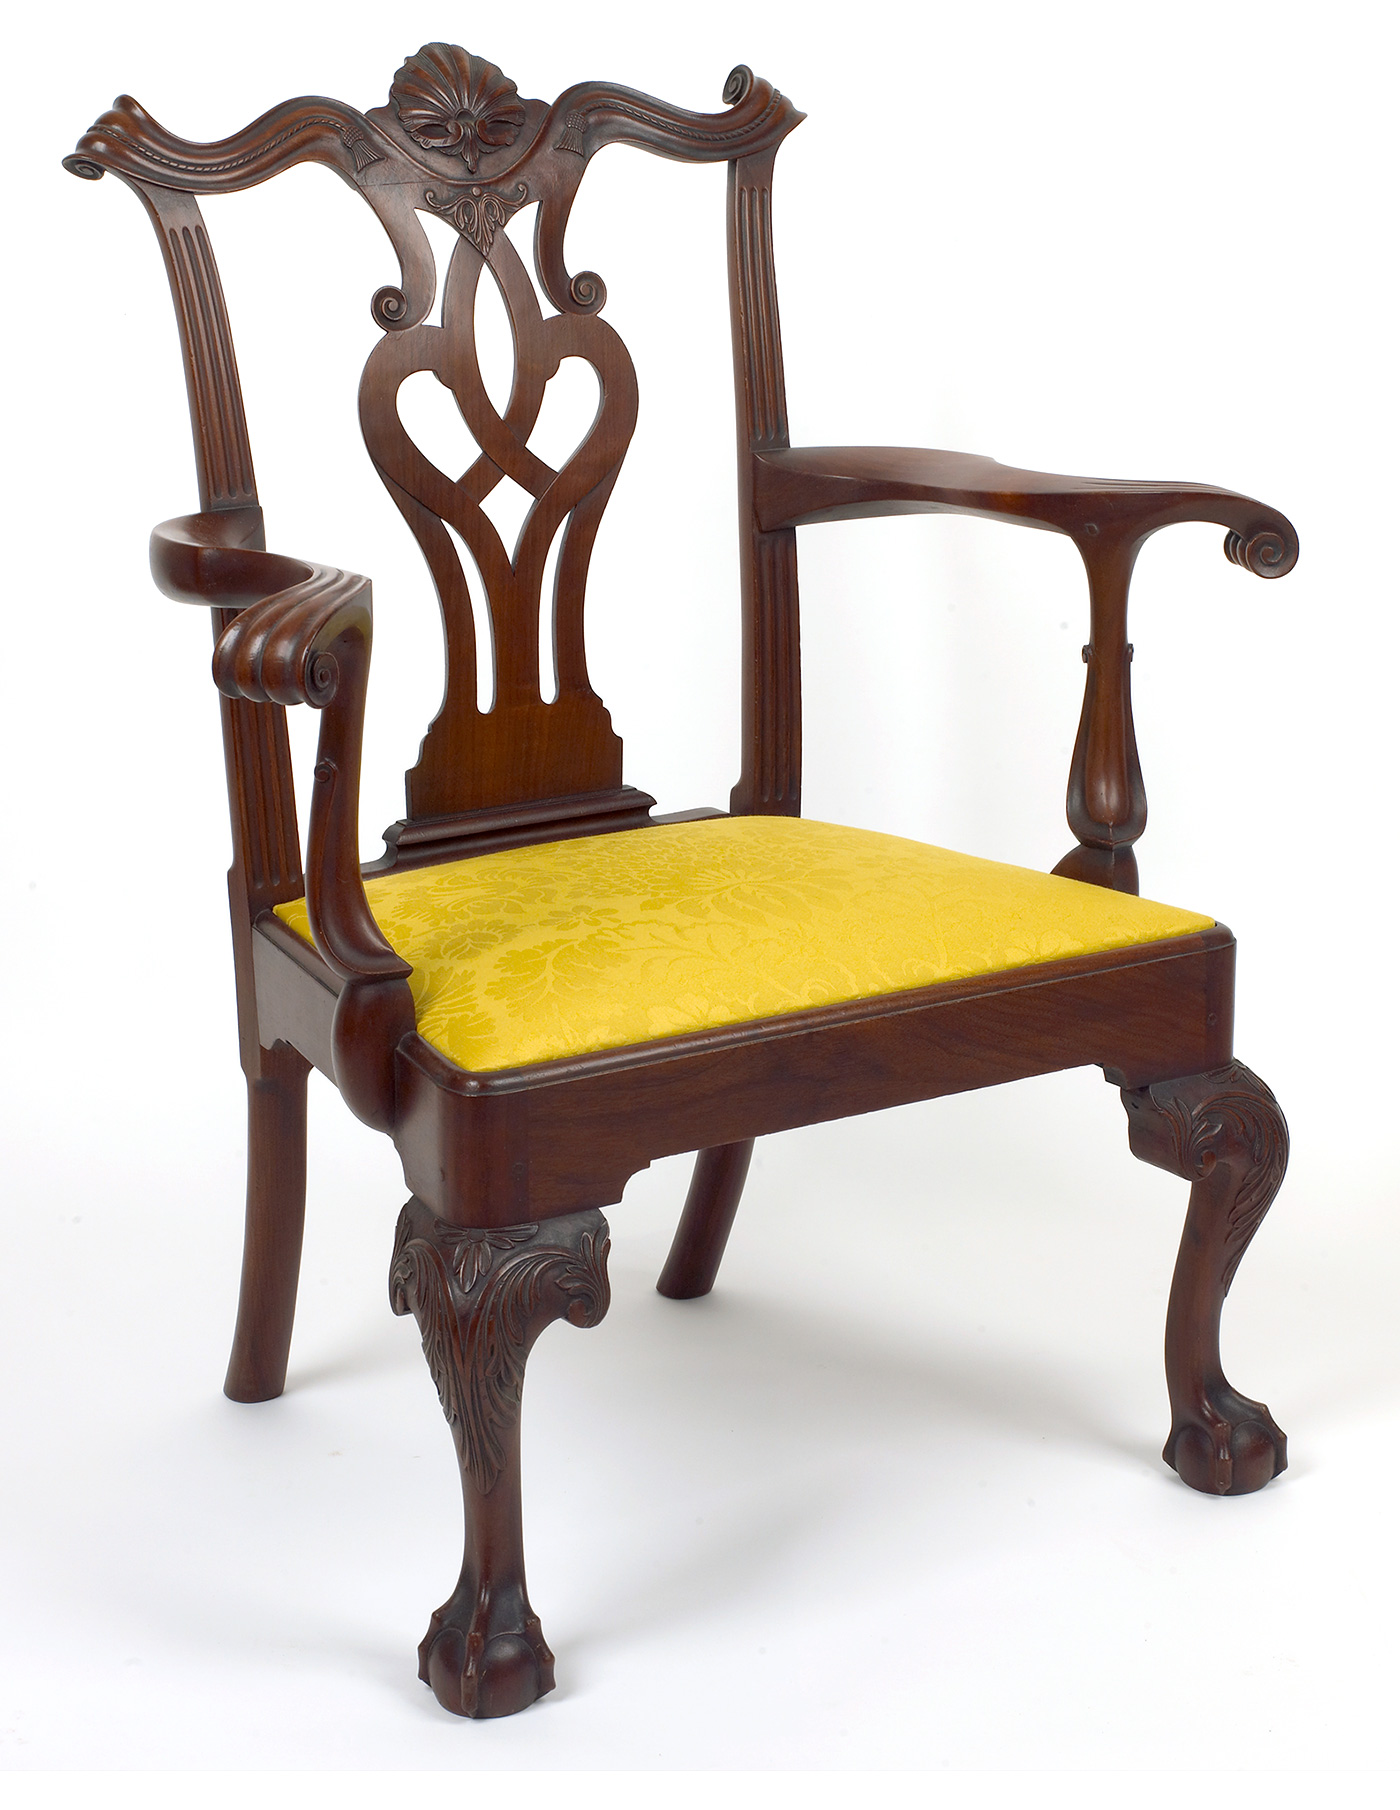 Andersen & Stauffer Furniture Makers Seating Coates Family